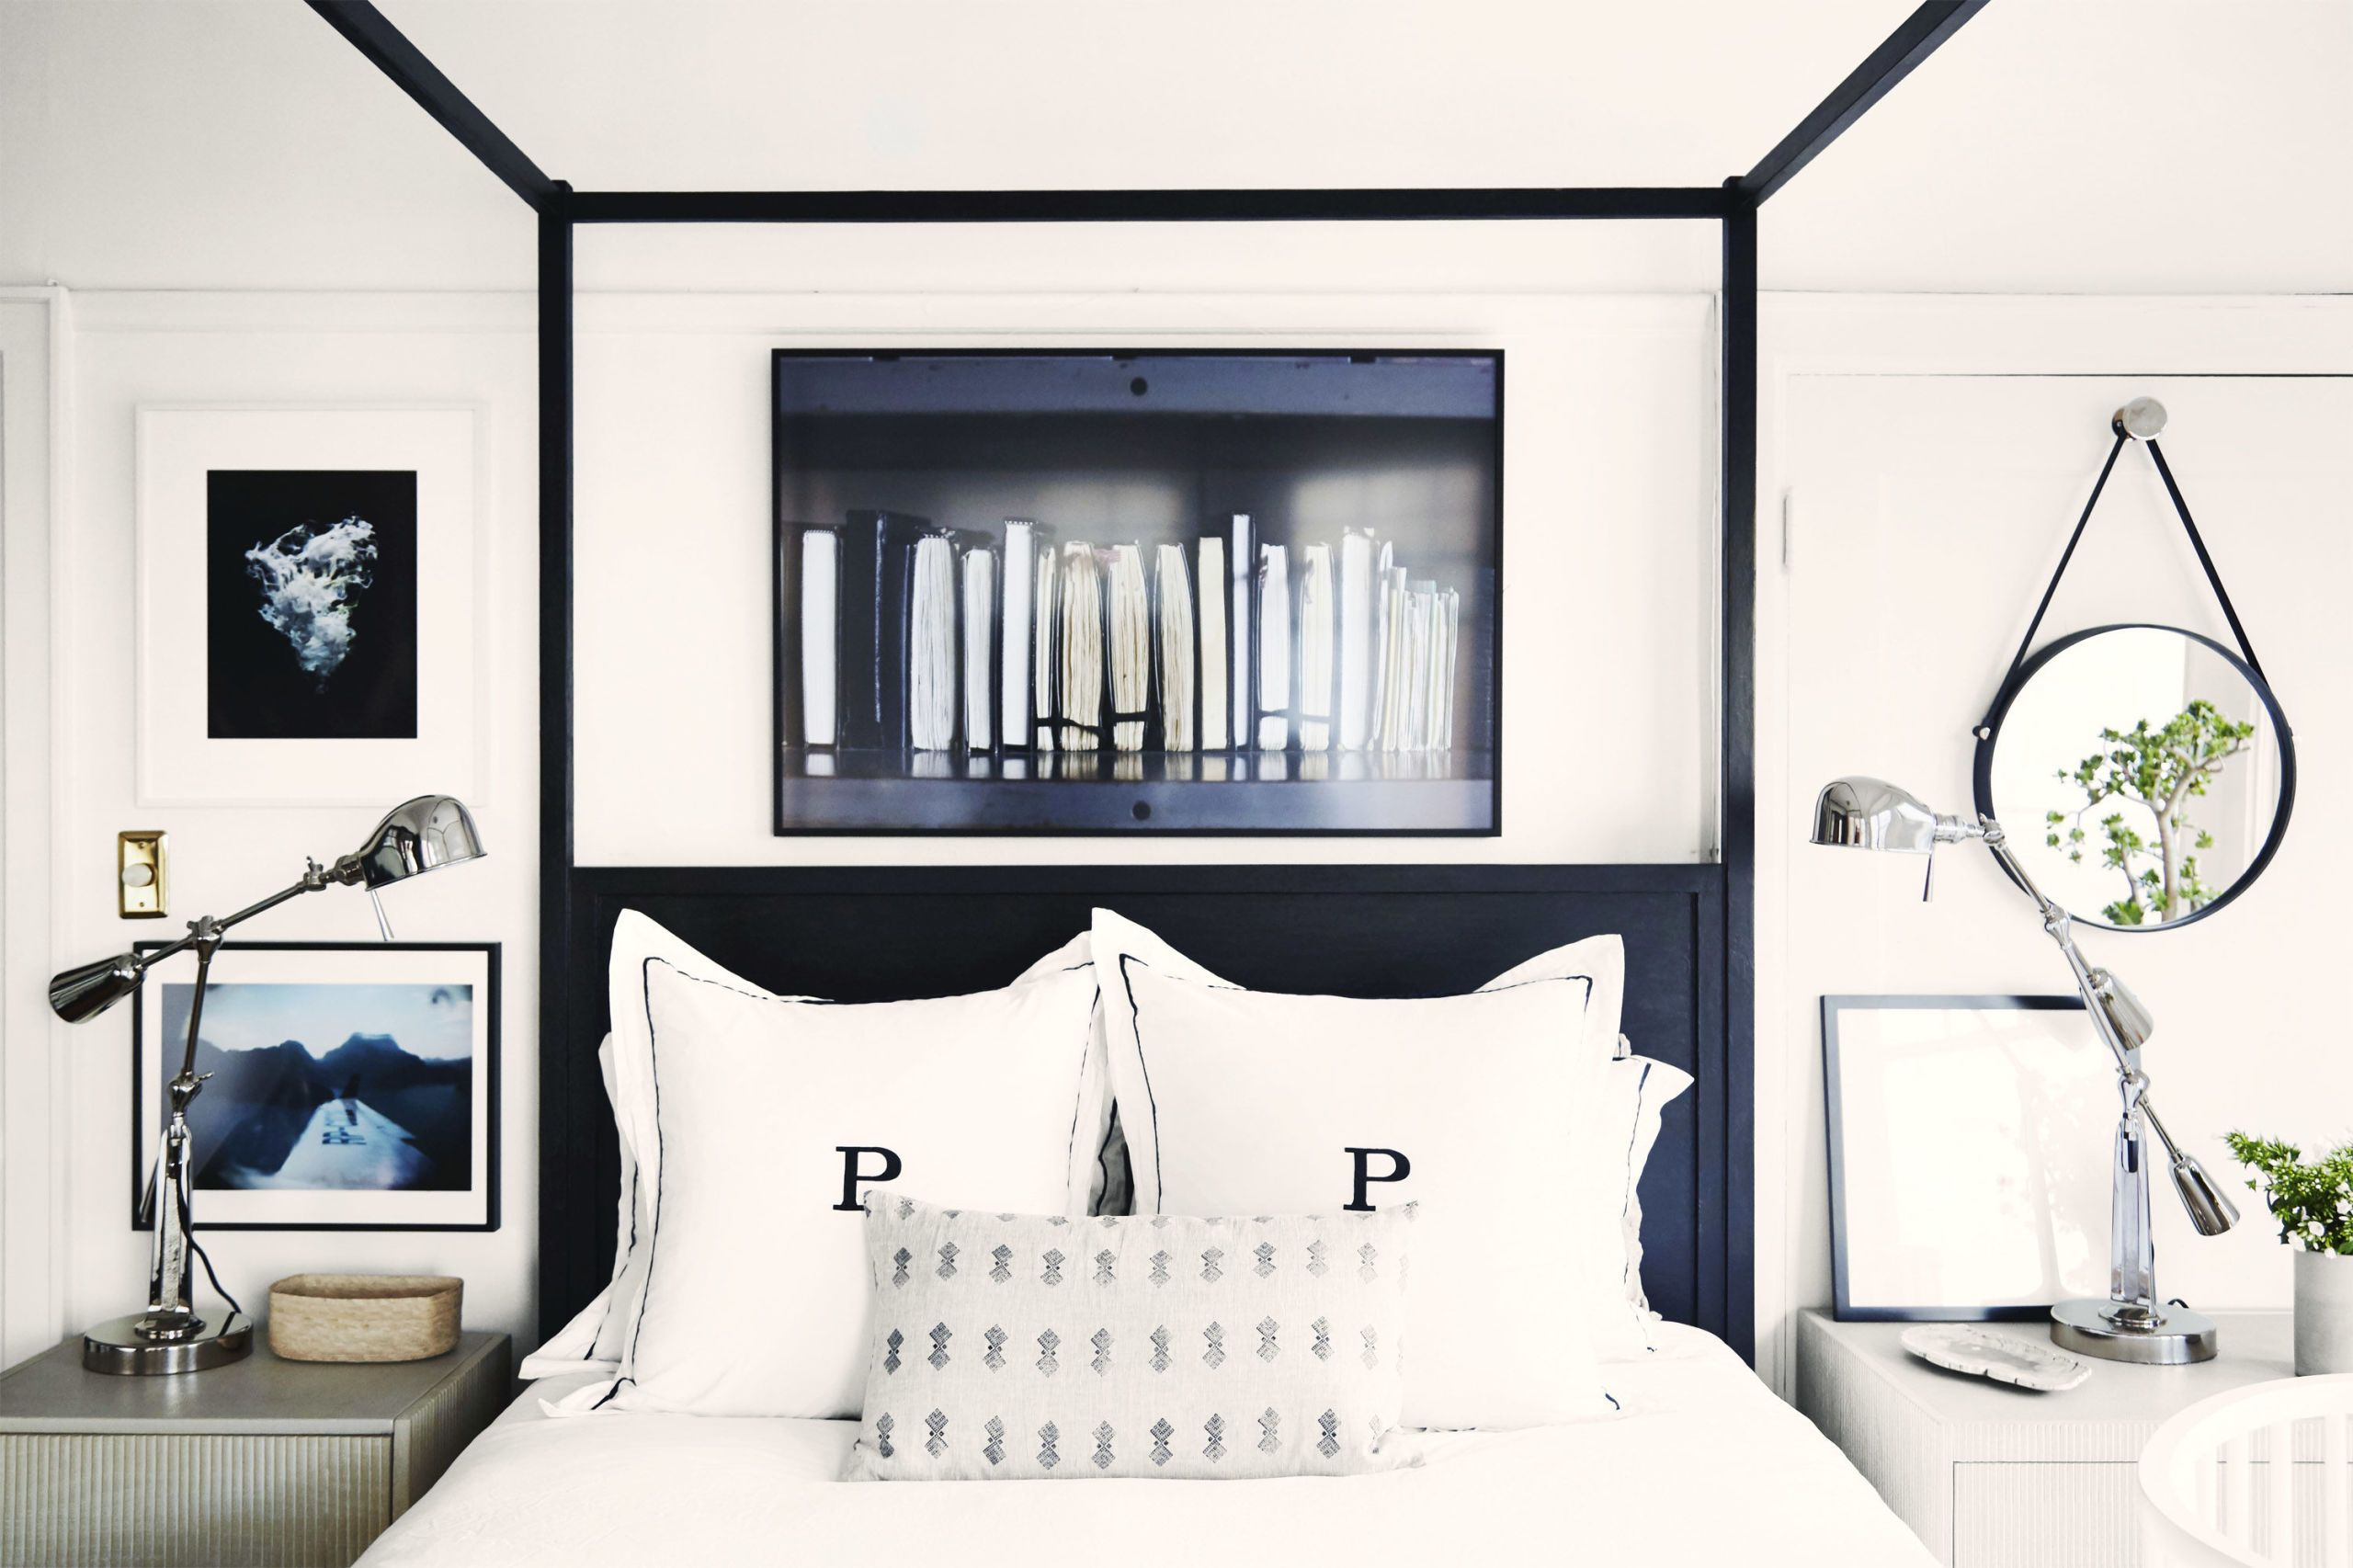 65 bedroom decorating ideas how to design a master bedroom rh goodhousekeeping com